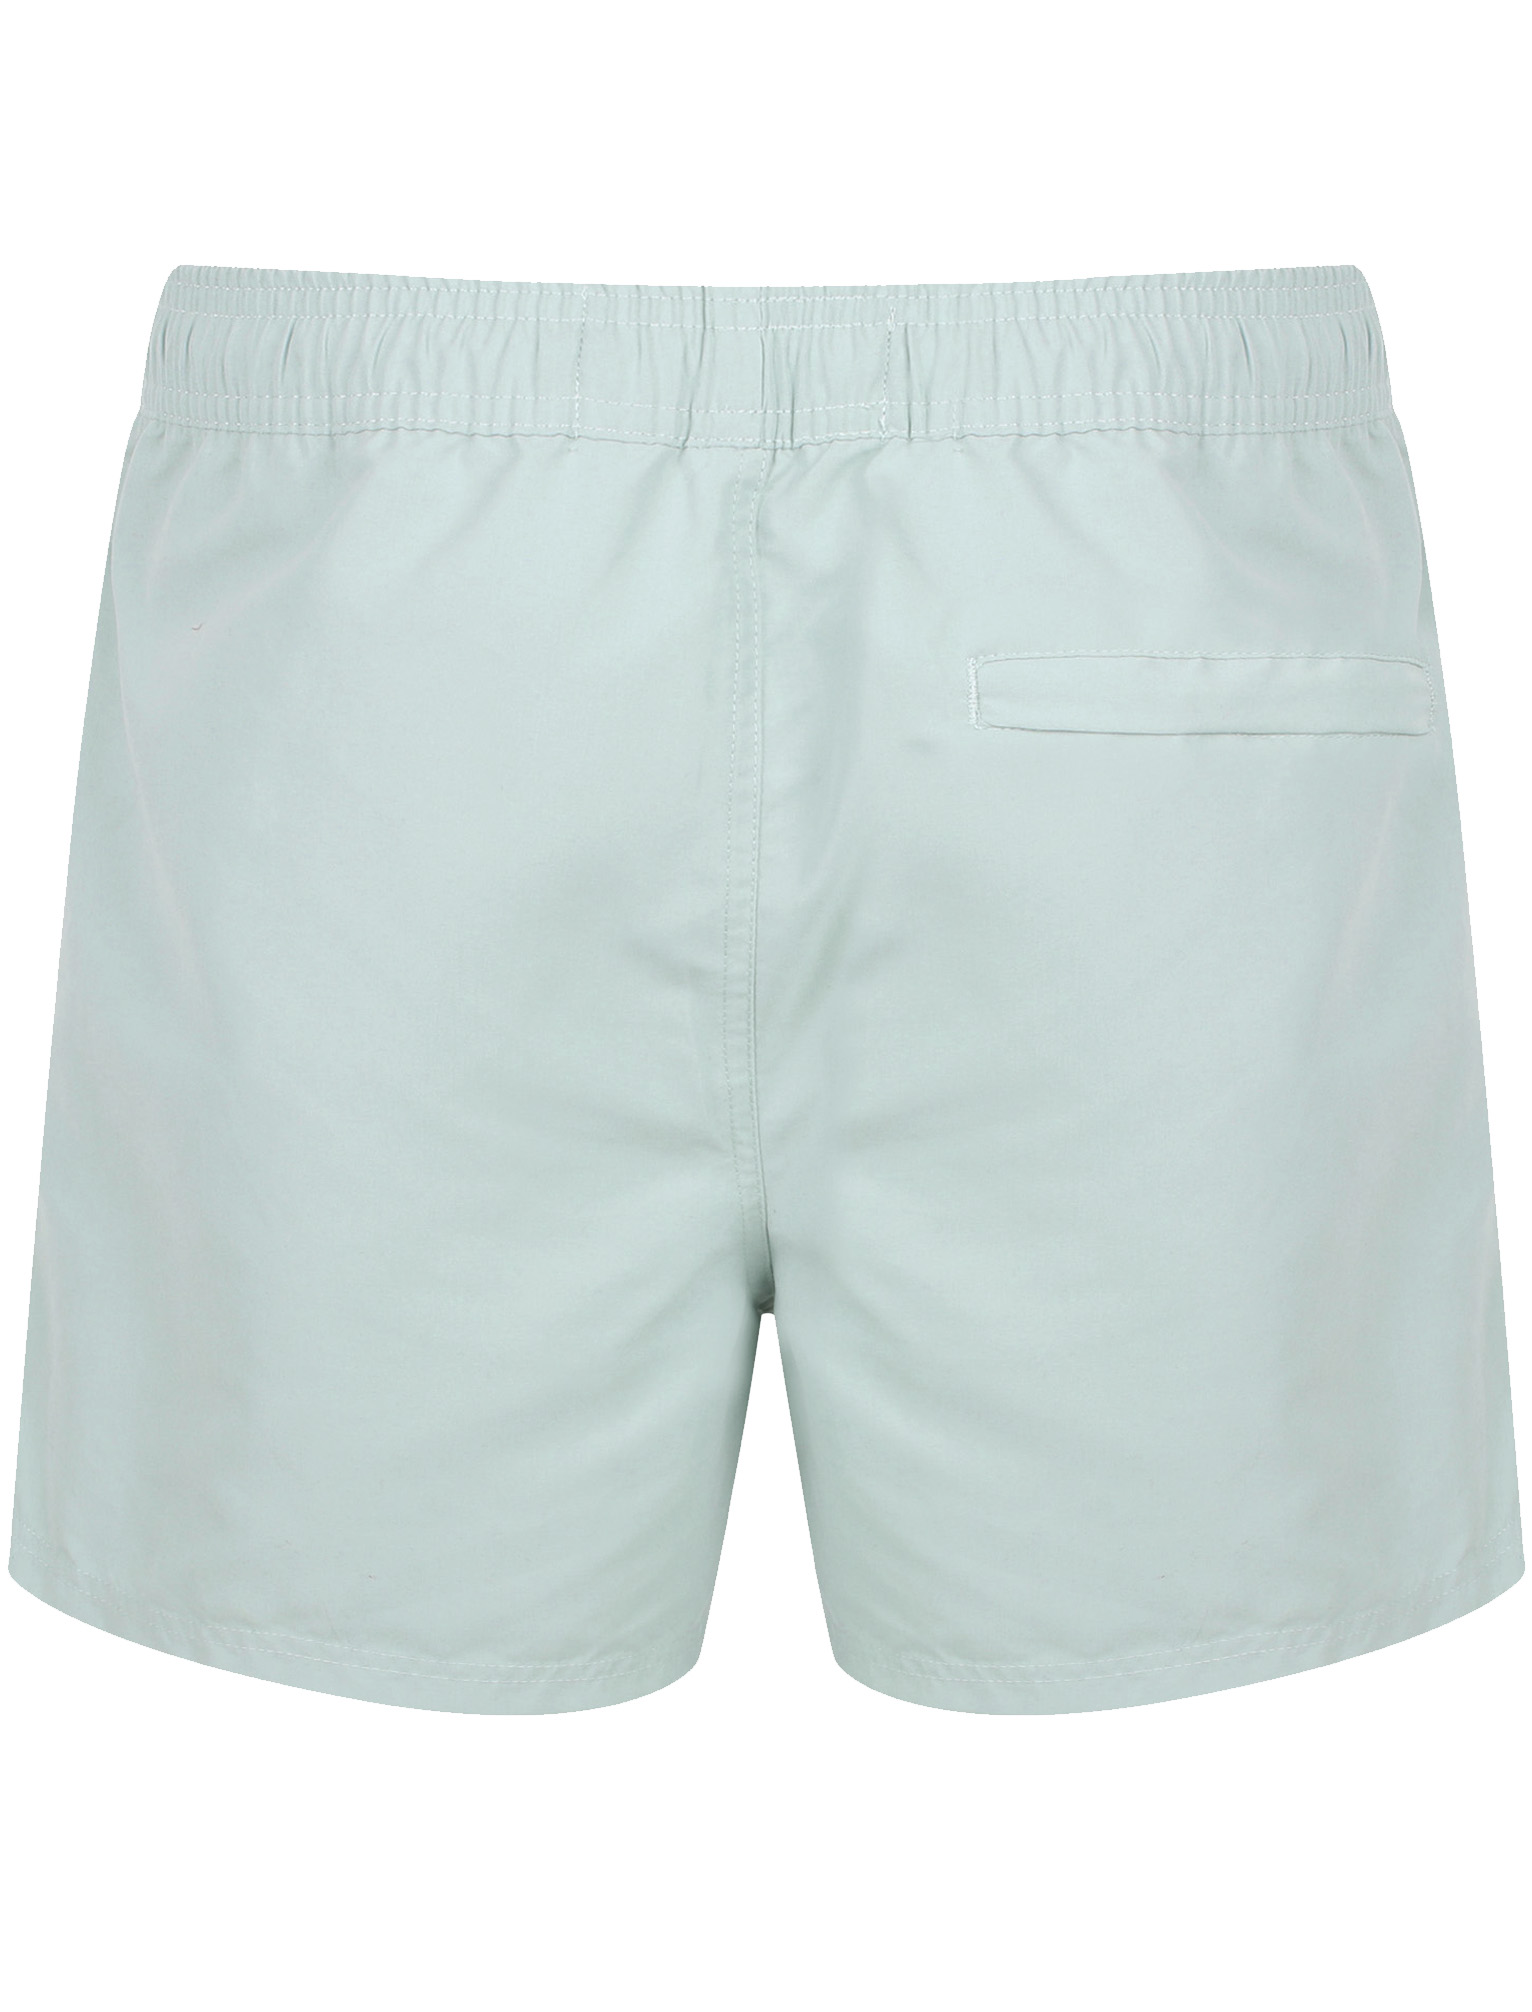 New-Mens-Tokyo-Laundry-Branded-Classic-Soft-Swim-Shorts-With-Pockets-Size-S-XXL thumbnail 13